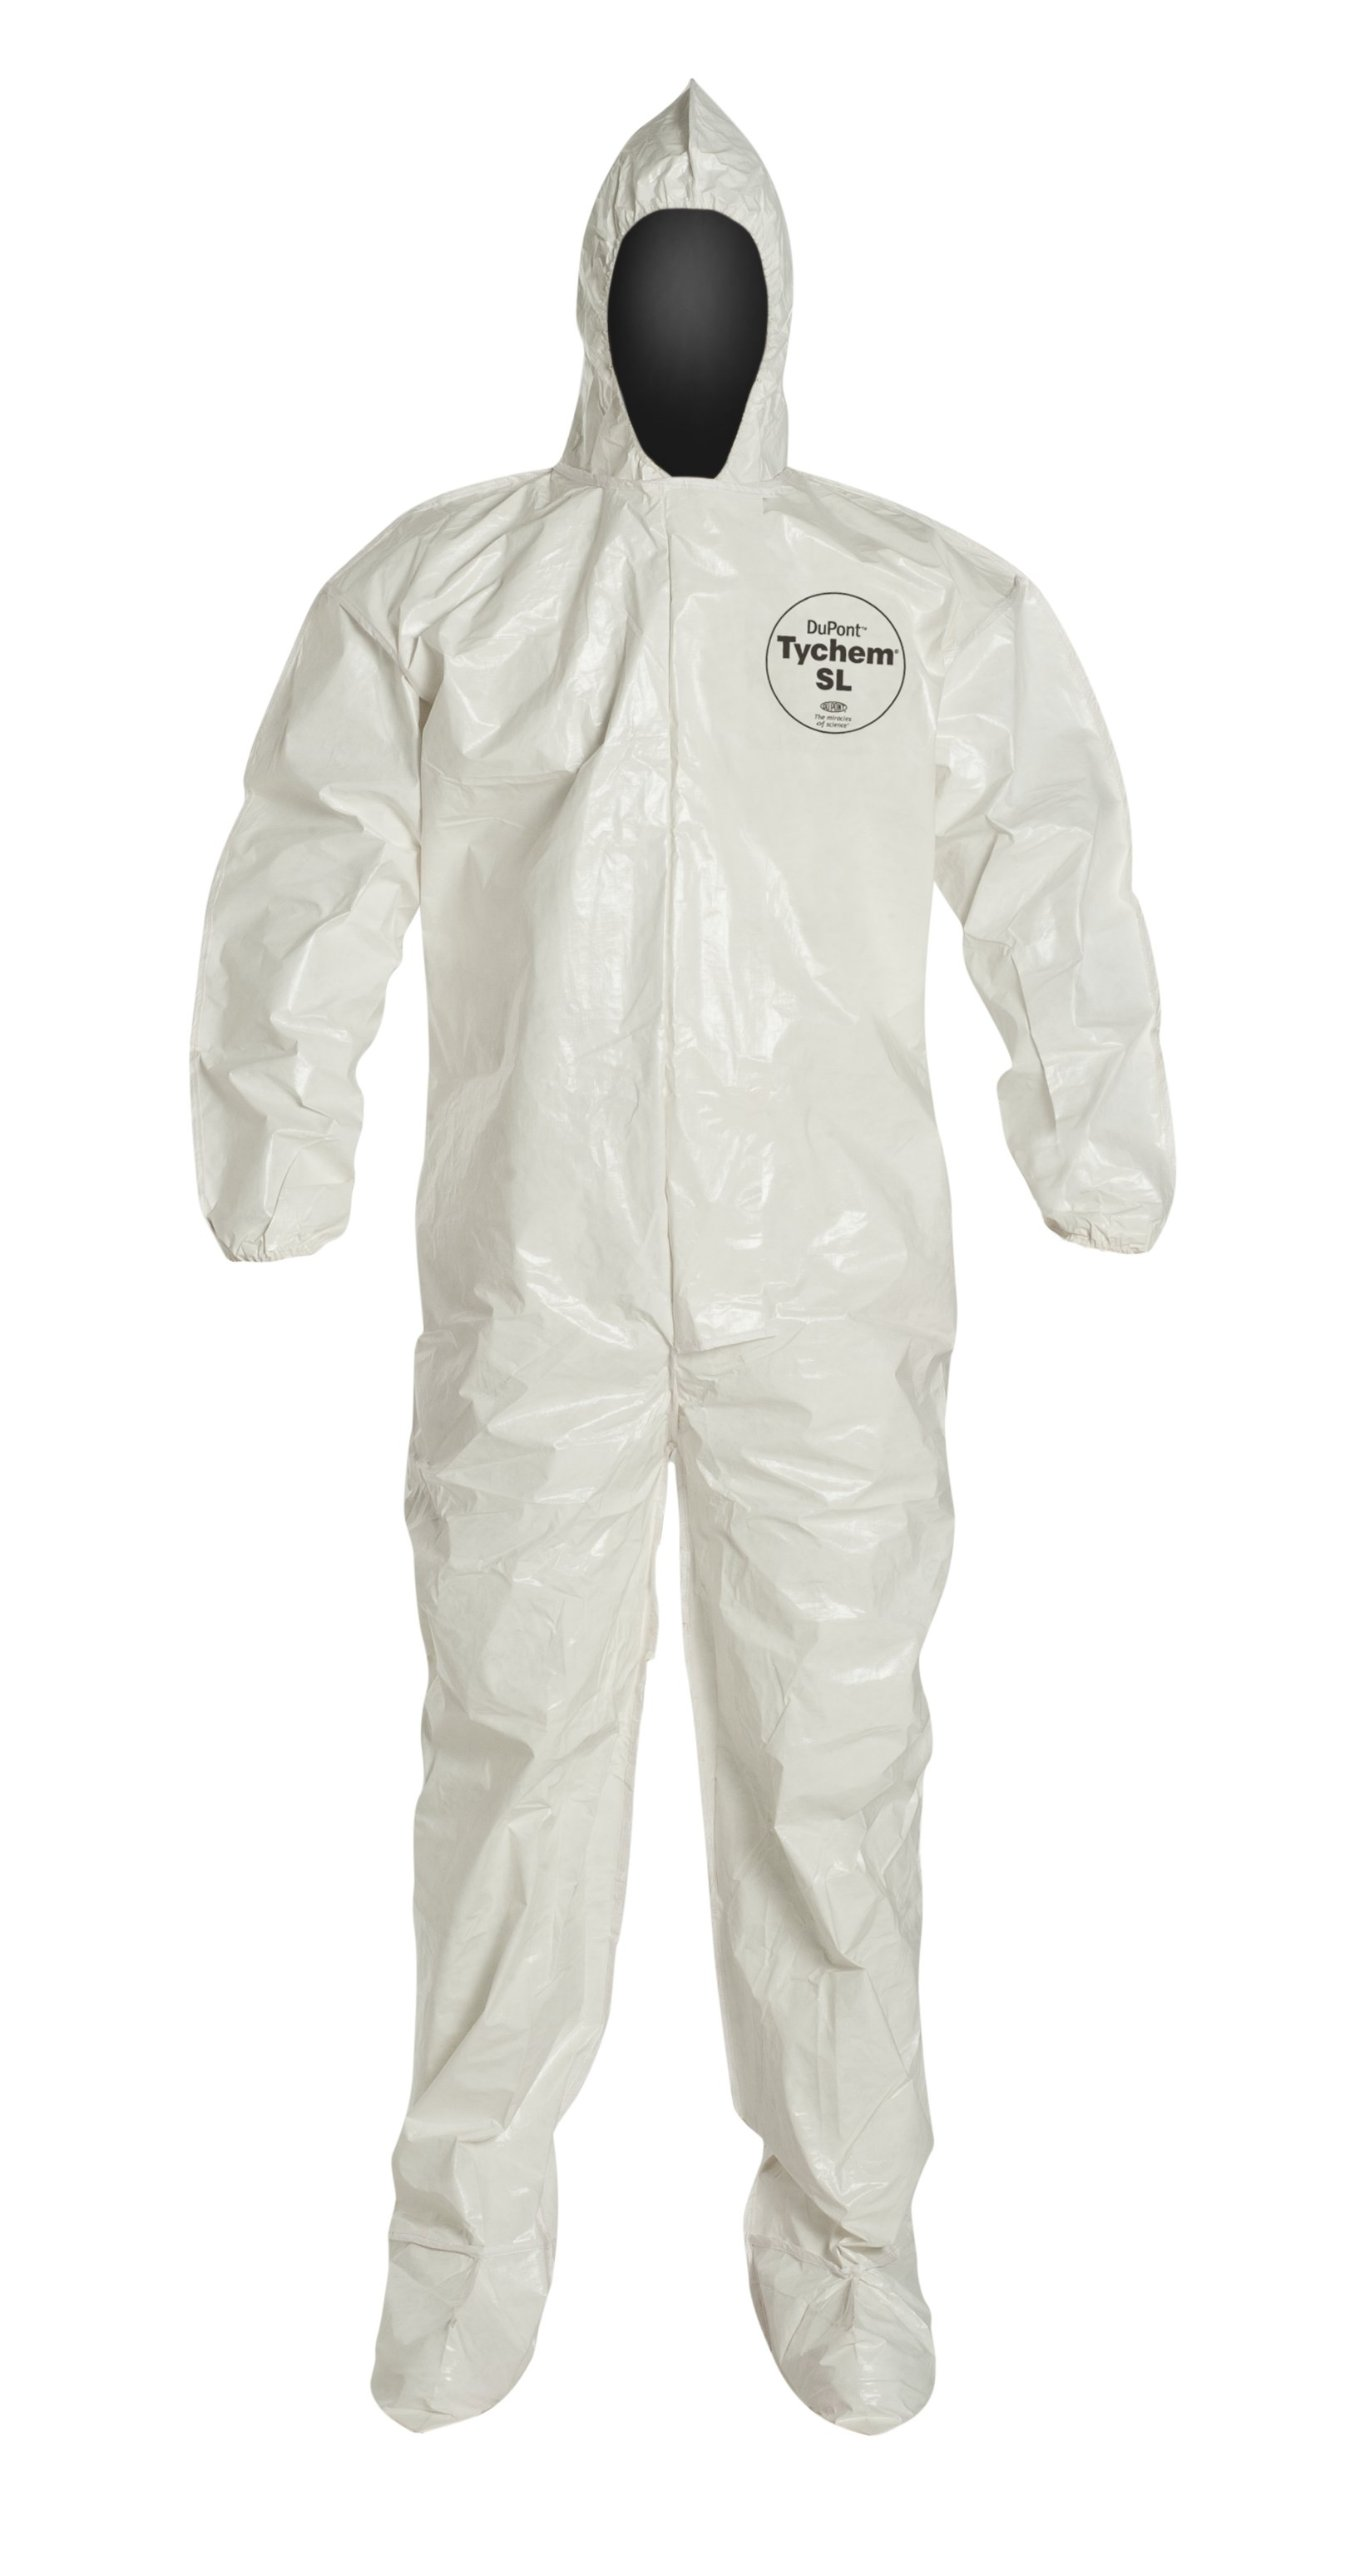 DuPont Tychem 4000 SL122T  Chemical Resistant Coverall with Hood and Boots, Disposable, Elastic Cuff, White, 2XL (Pack of 6) by DuPont (Image #1)